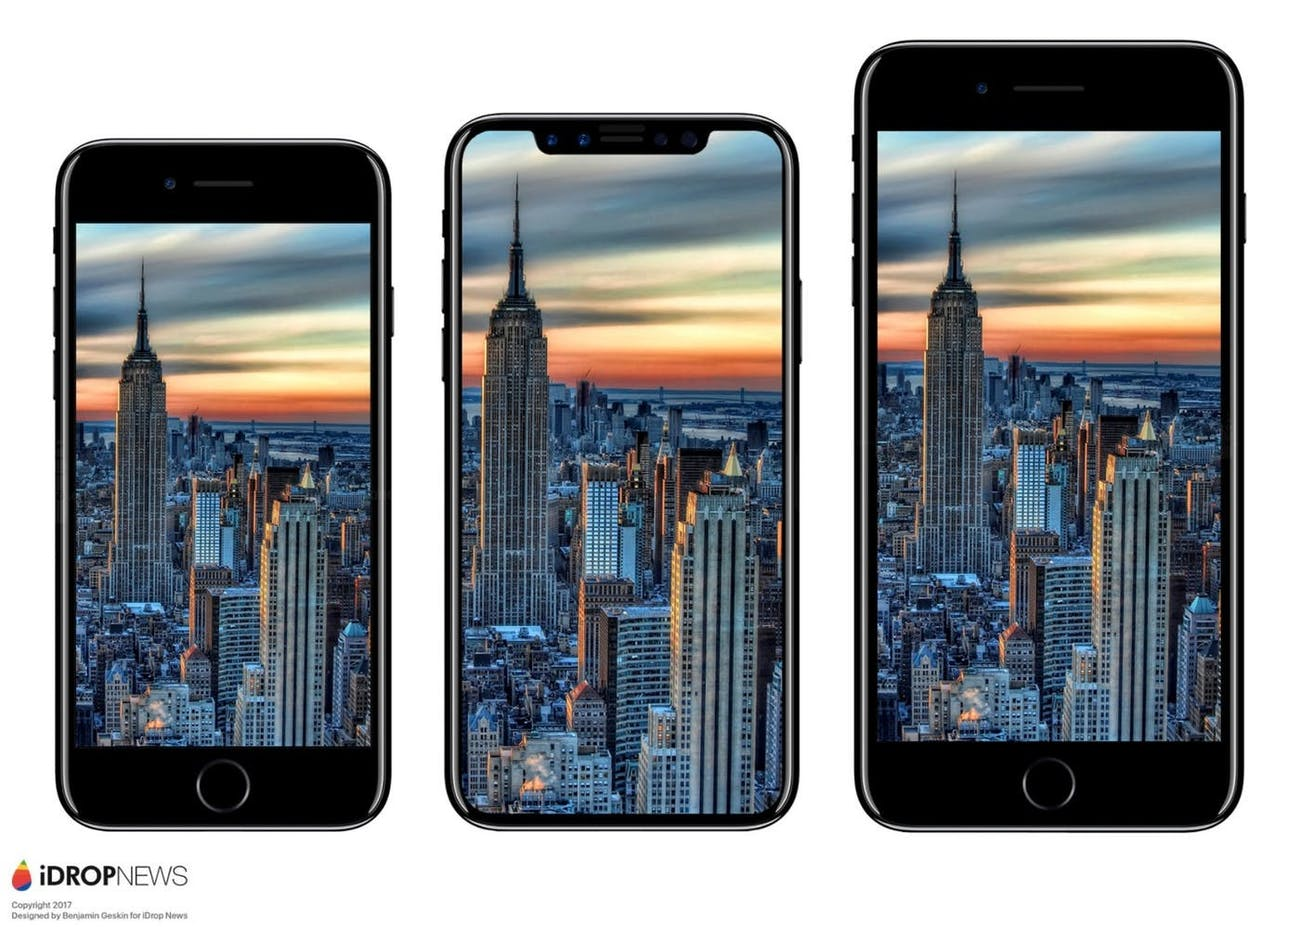 The iPhone 7, the rumored iPhone 8 and the iPhone 7 Plus